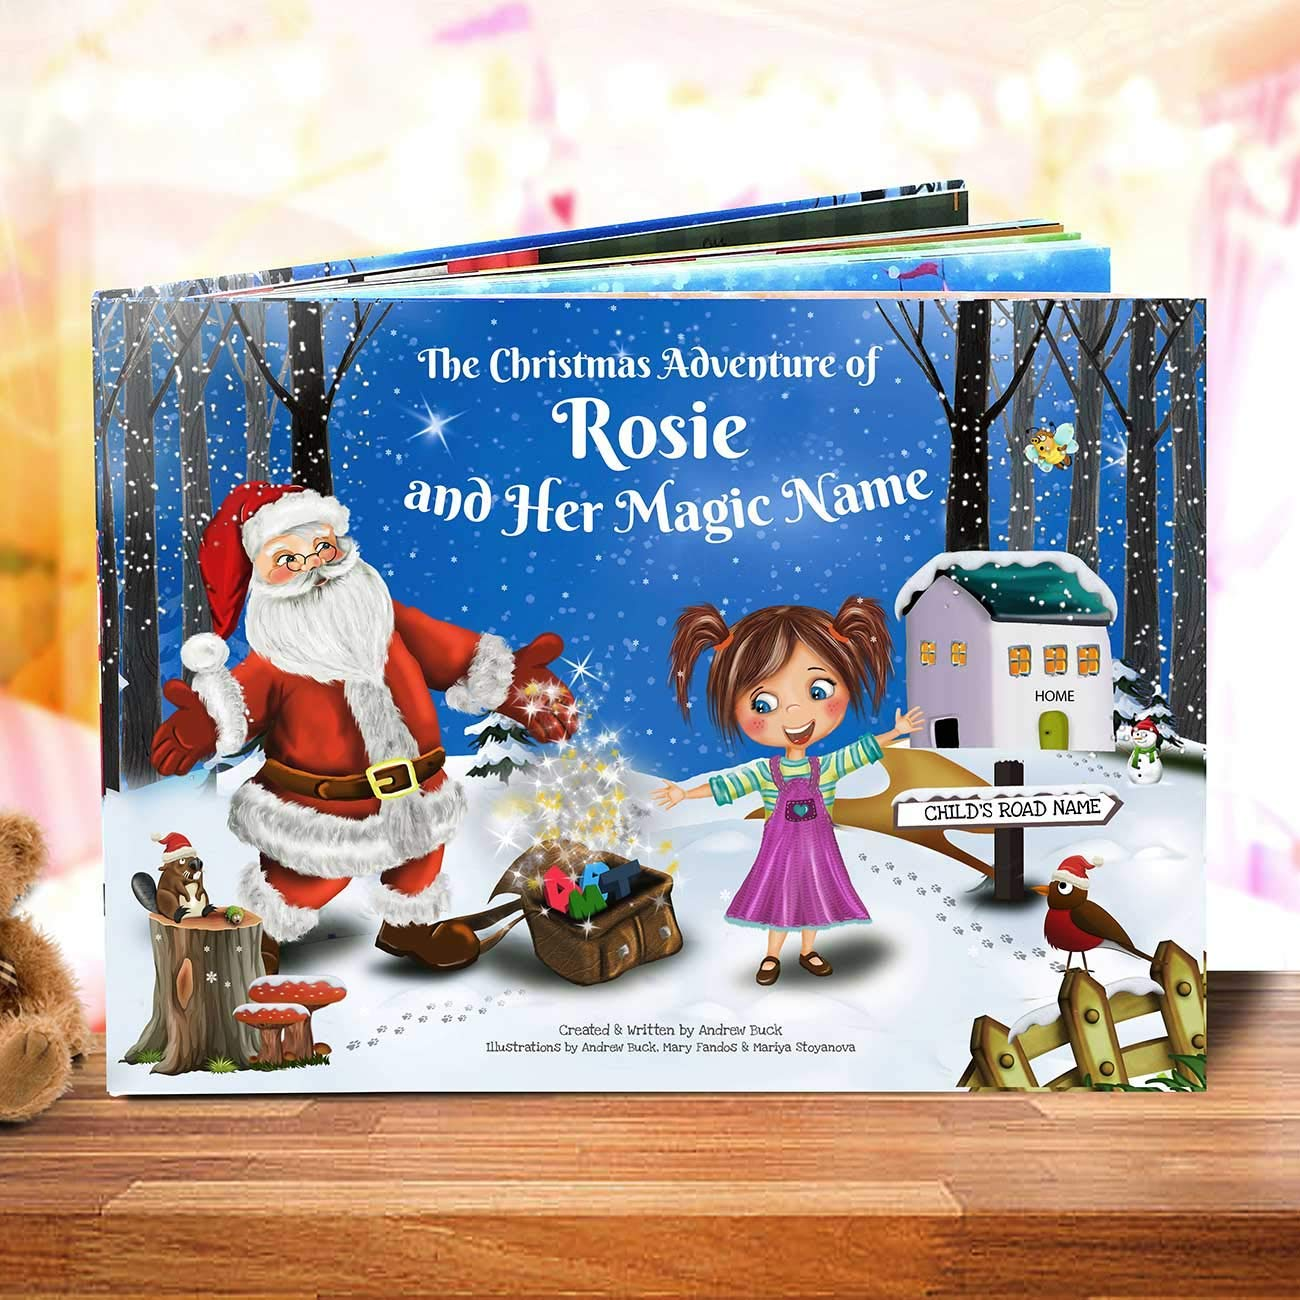 Customized Christmas Story Book with Santa - Unique for Every Child - Great Xmas Gift for Nieces, Nephews and Grandchildren